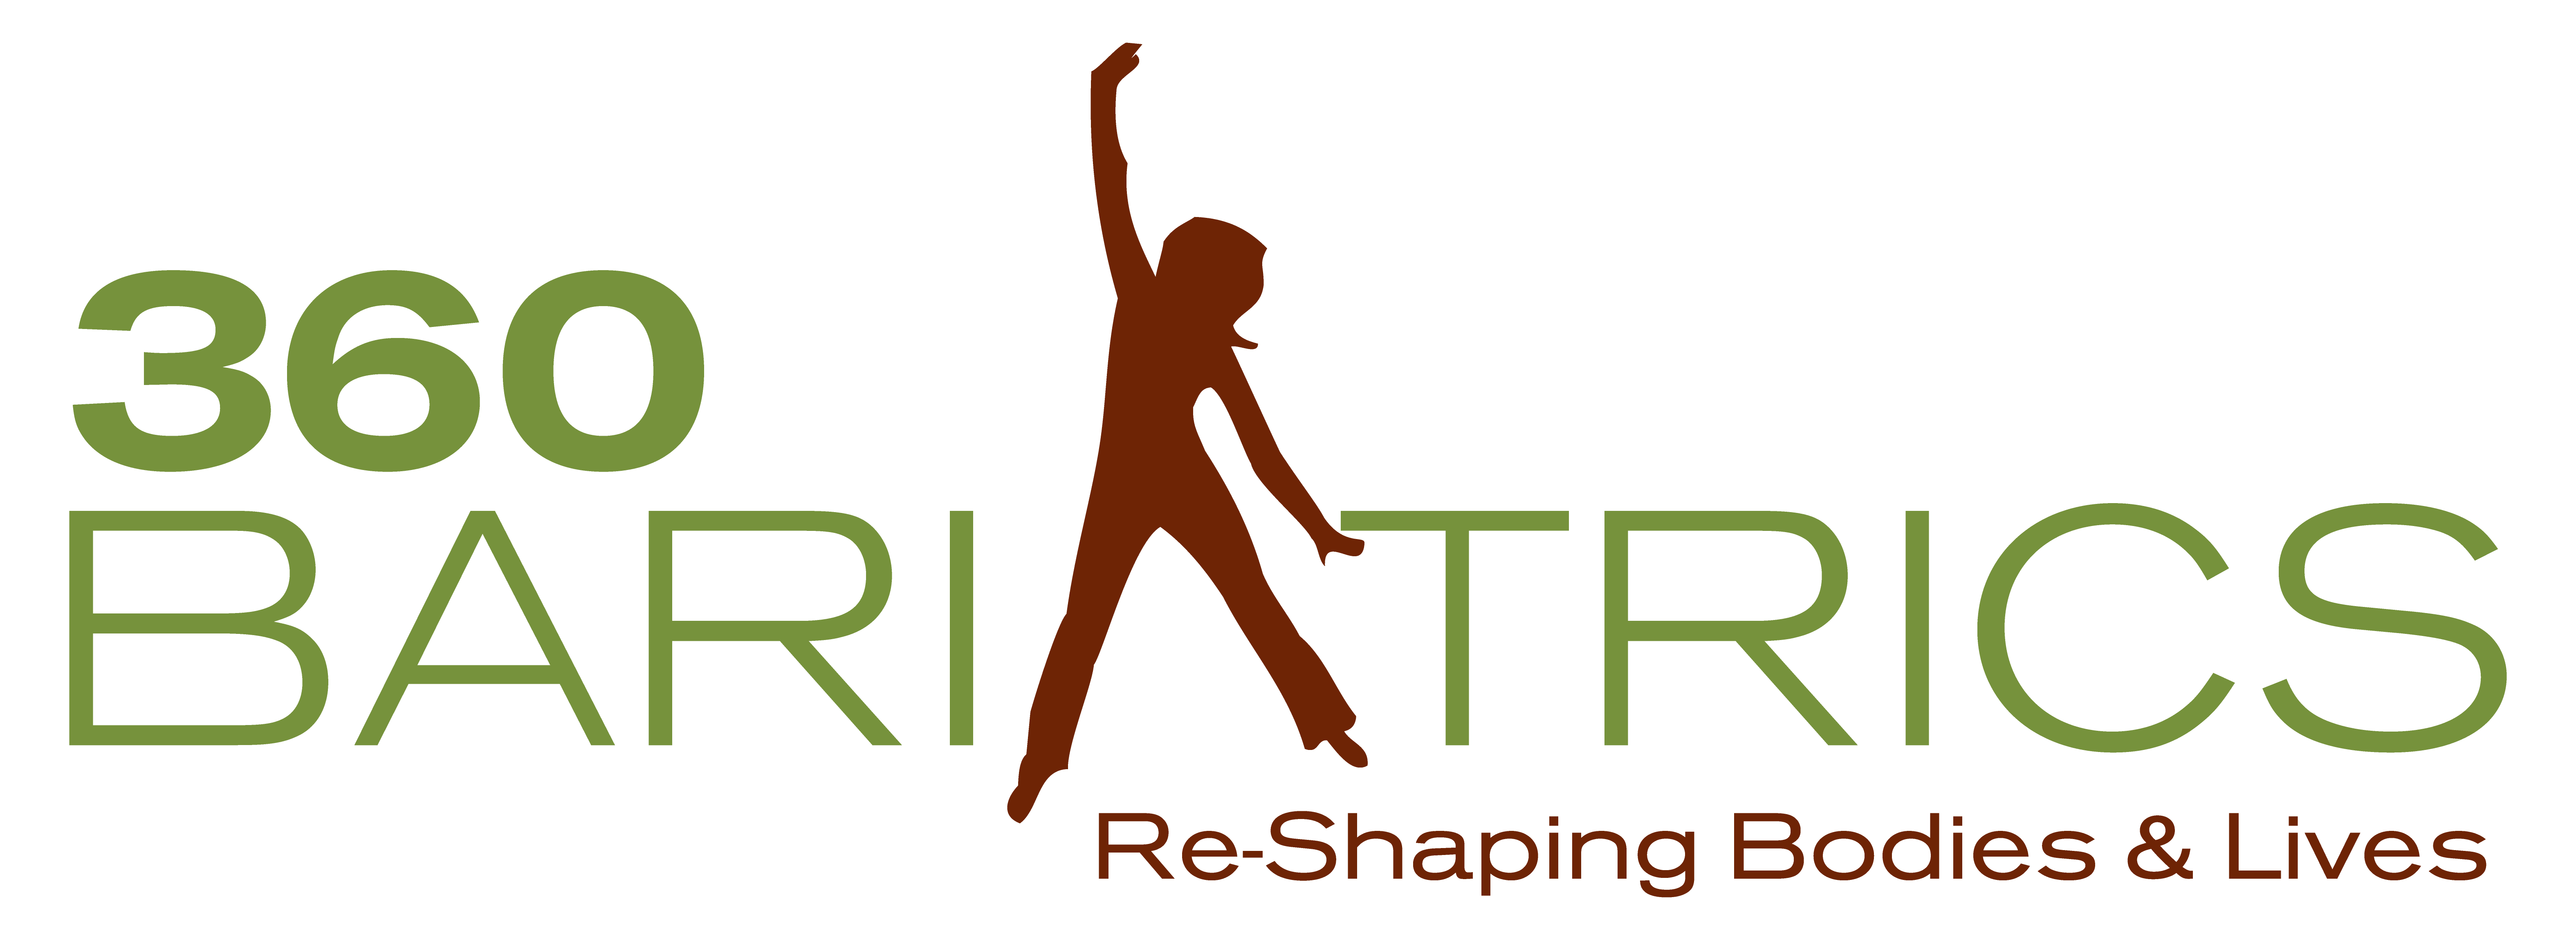 360 Bariatrics: Re-Shaping Bodies & Lives